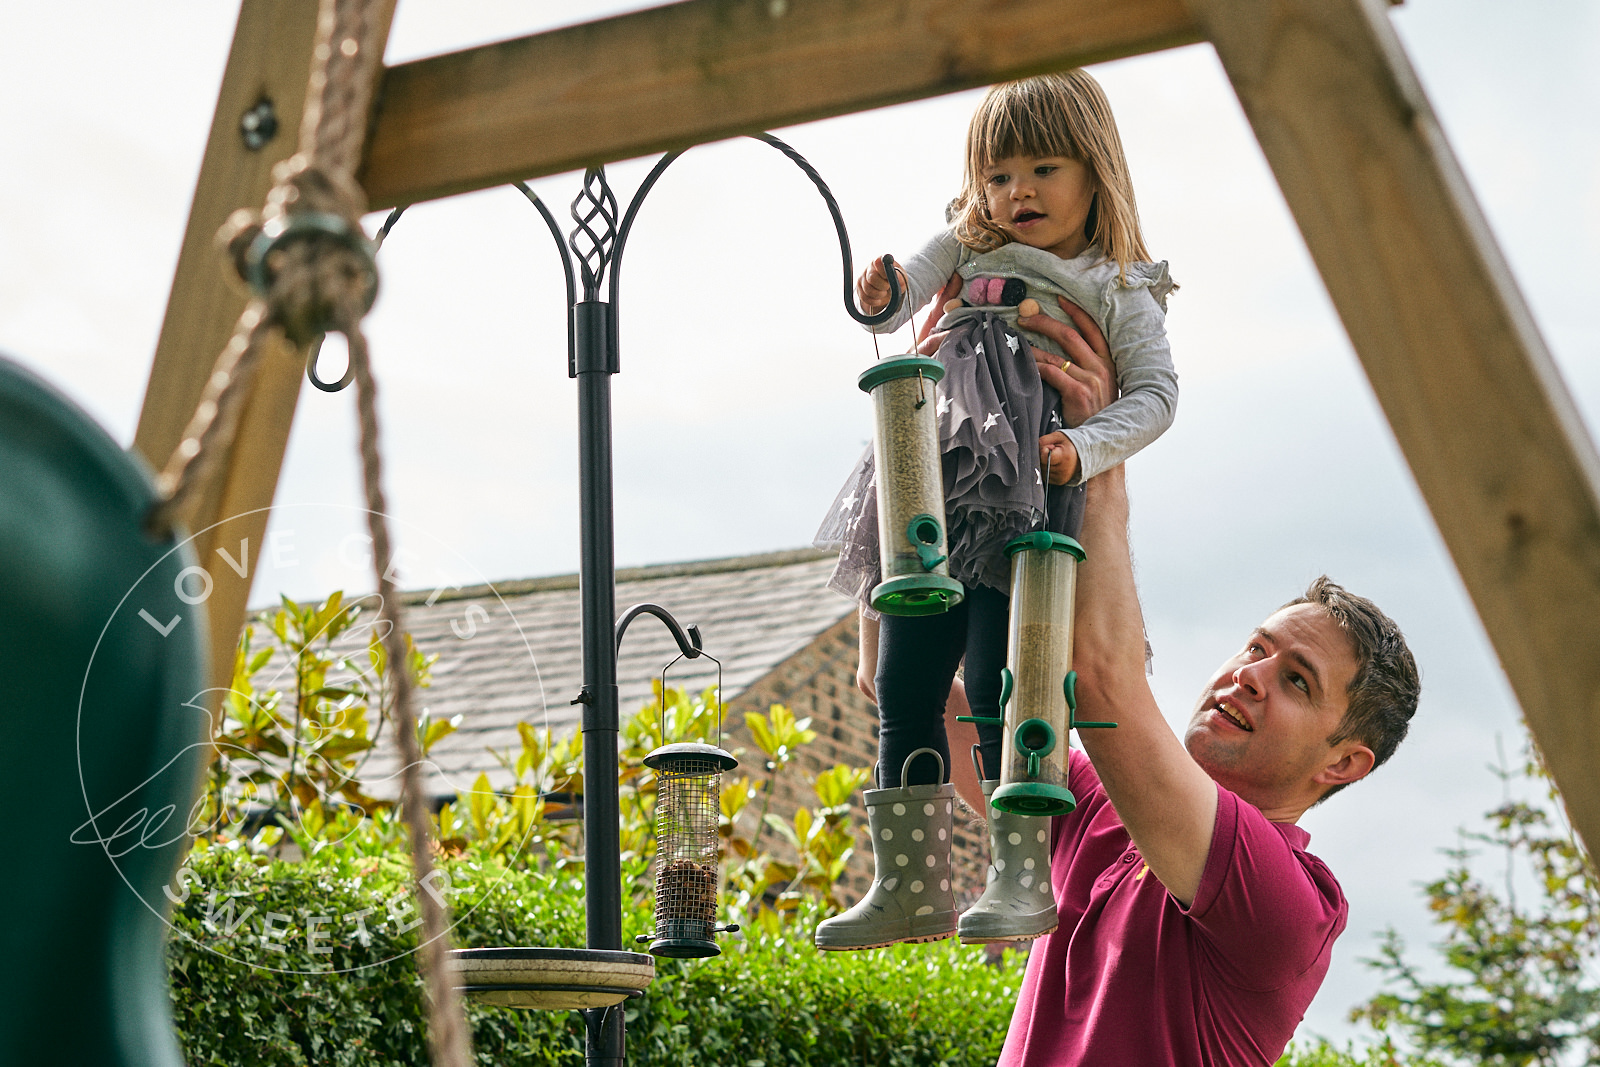 photo dad lifts girl to feed birds in garden